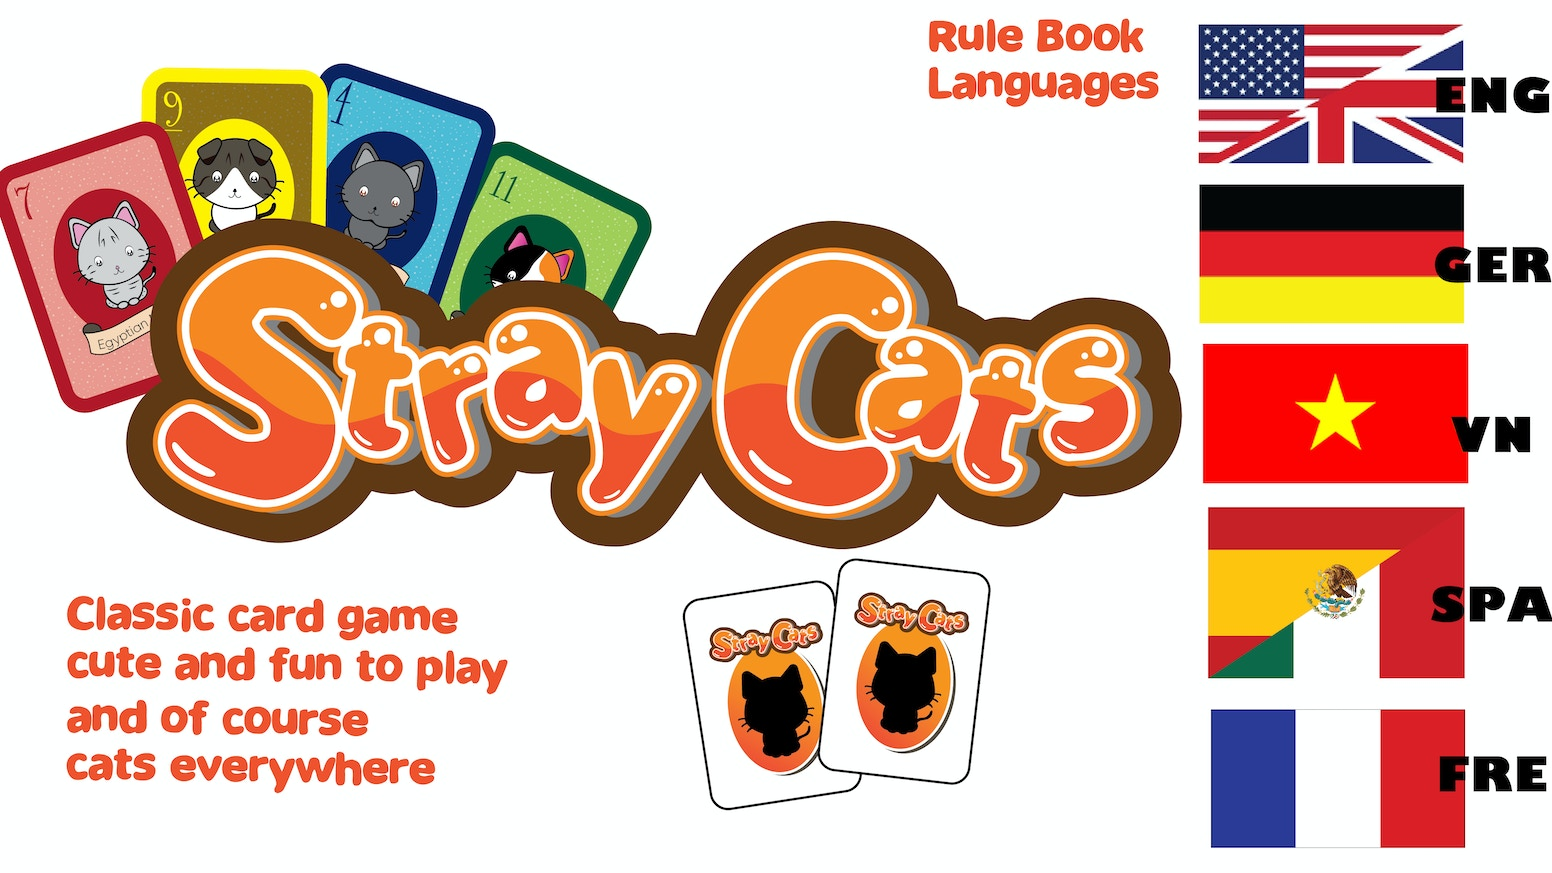 If you love cats, and love games, then this is PURRFECT for you :P Help the stray cats find a home sweet home.